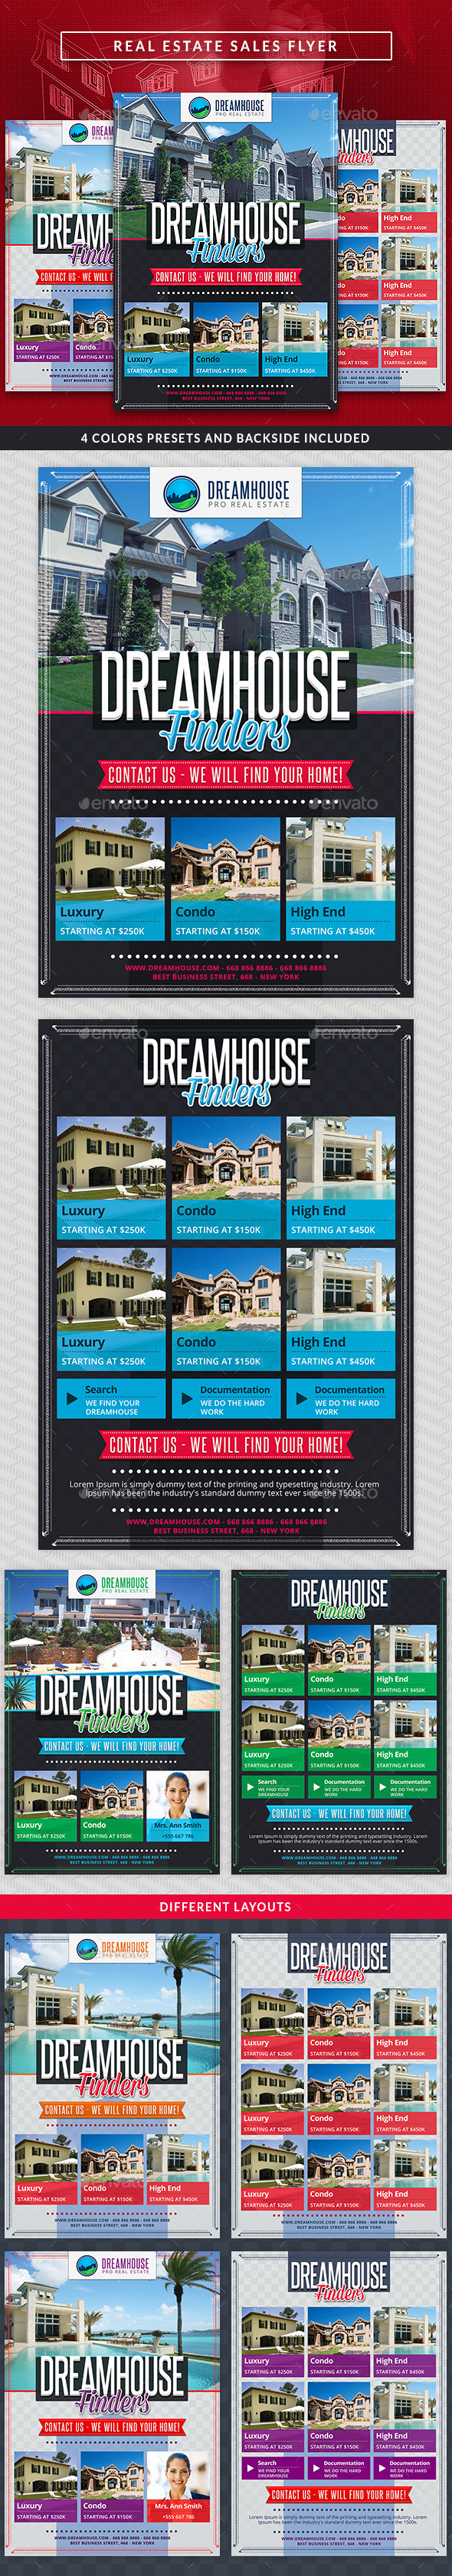 Real Estate Sales Commerce Flyer